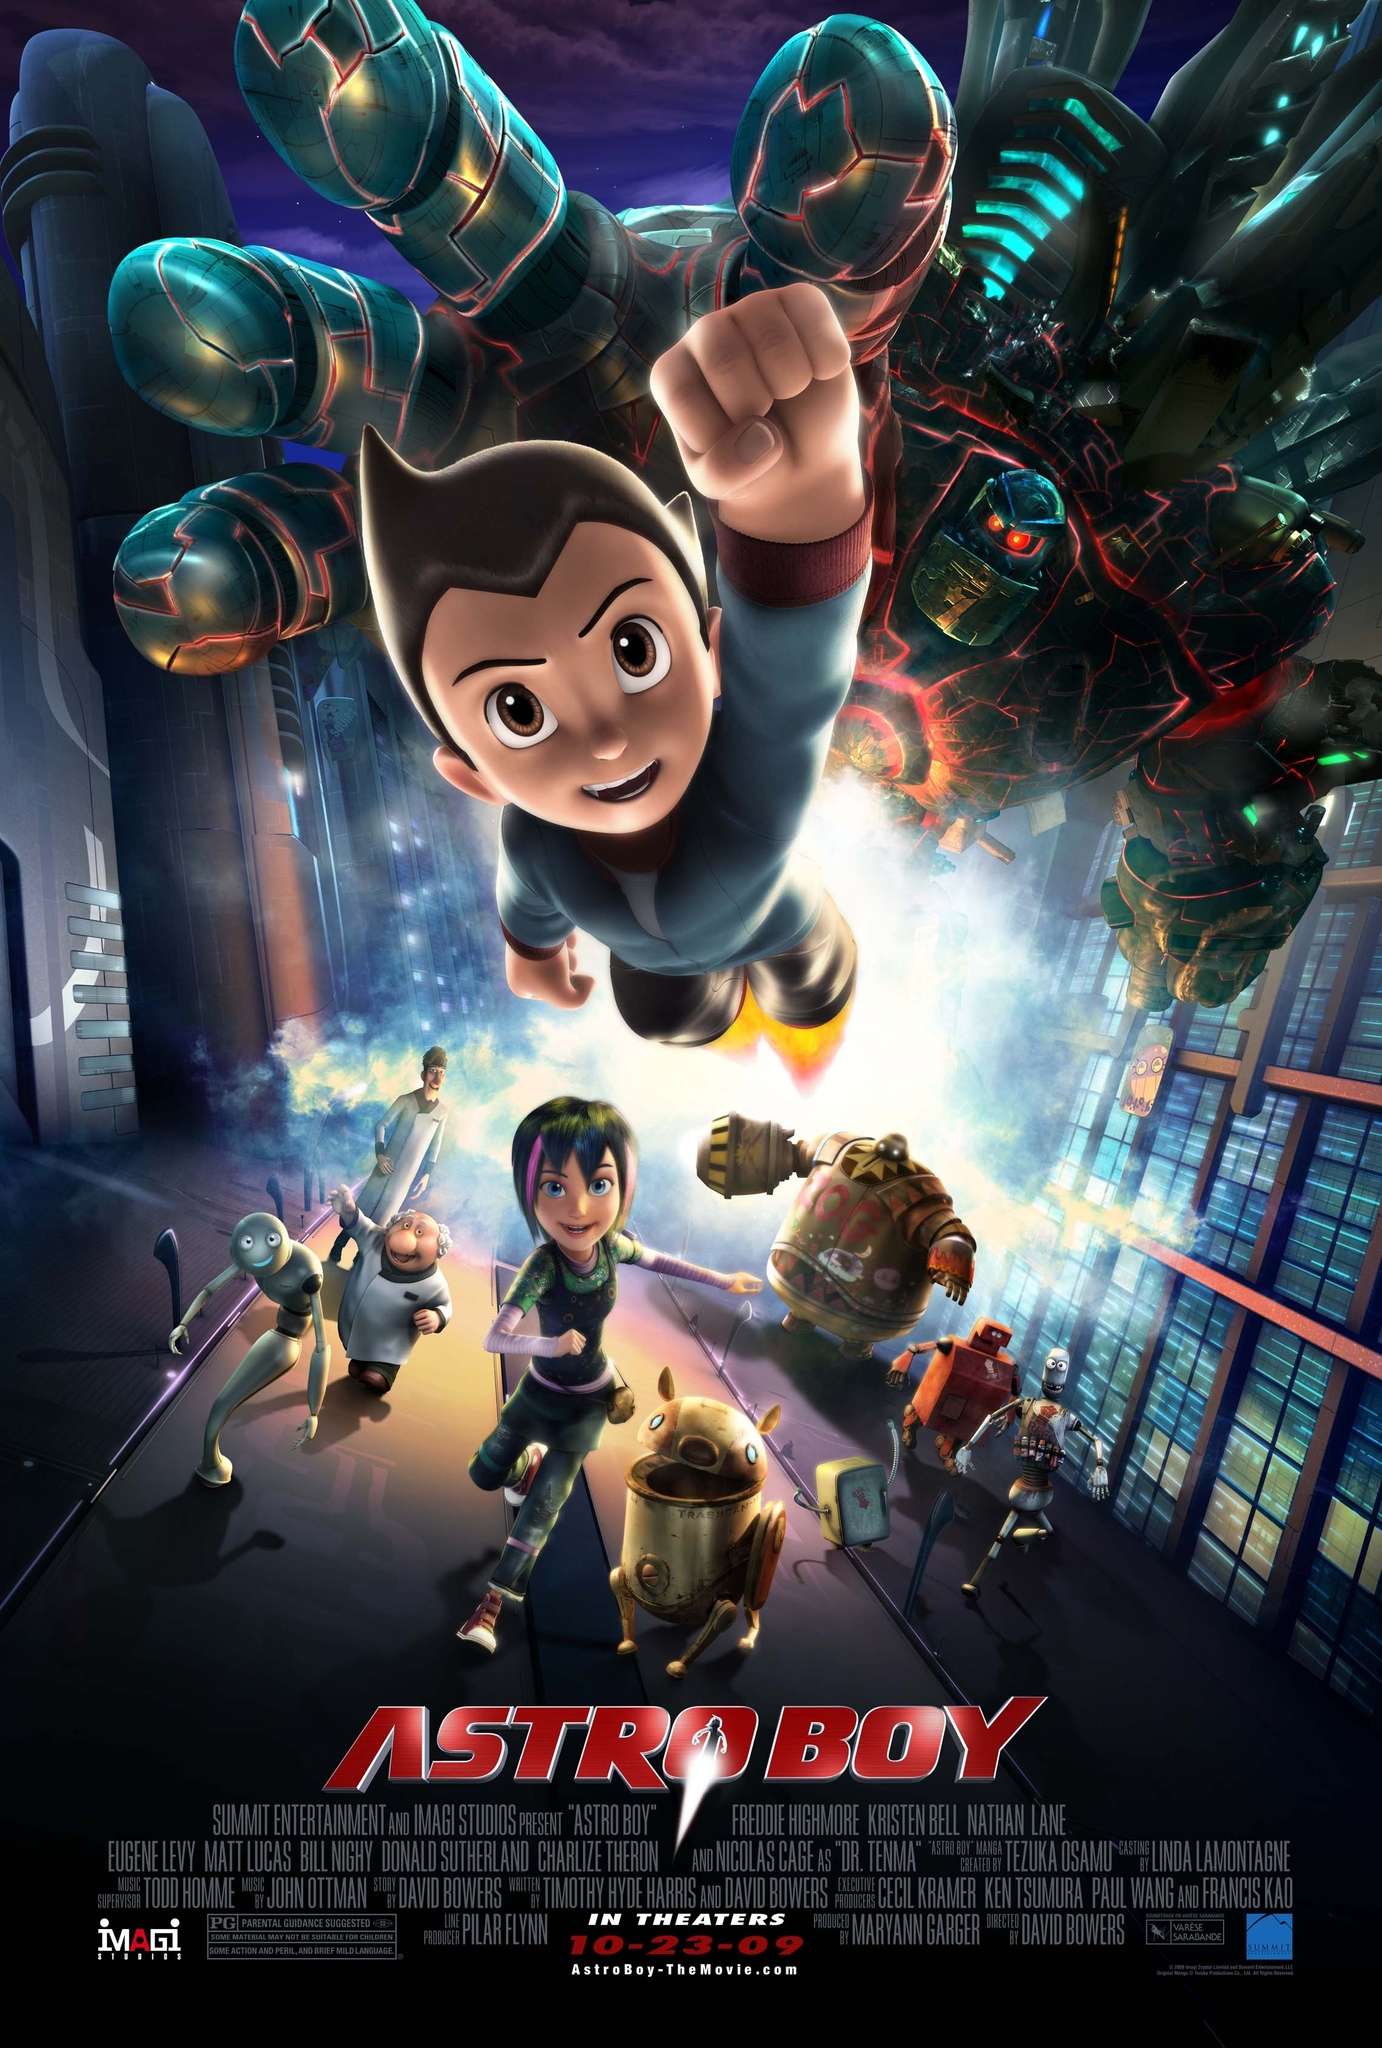 Astro boy 2003 vf torrent